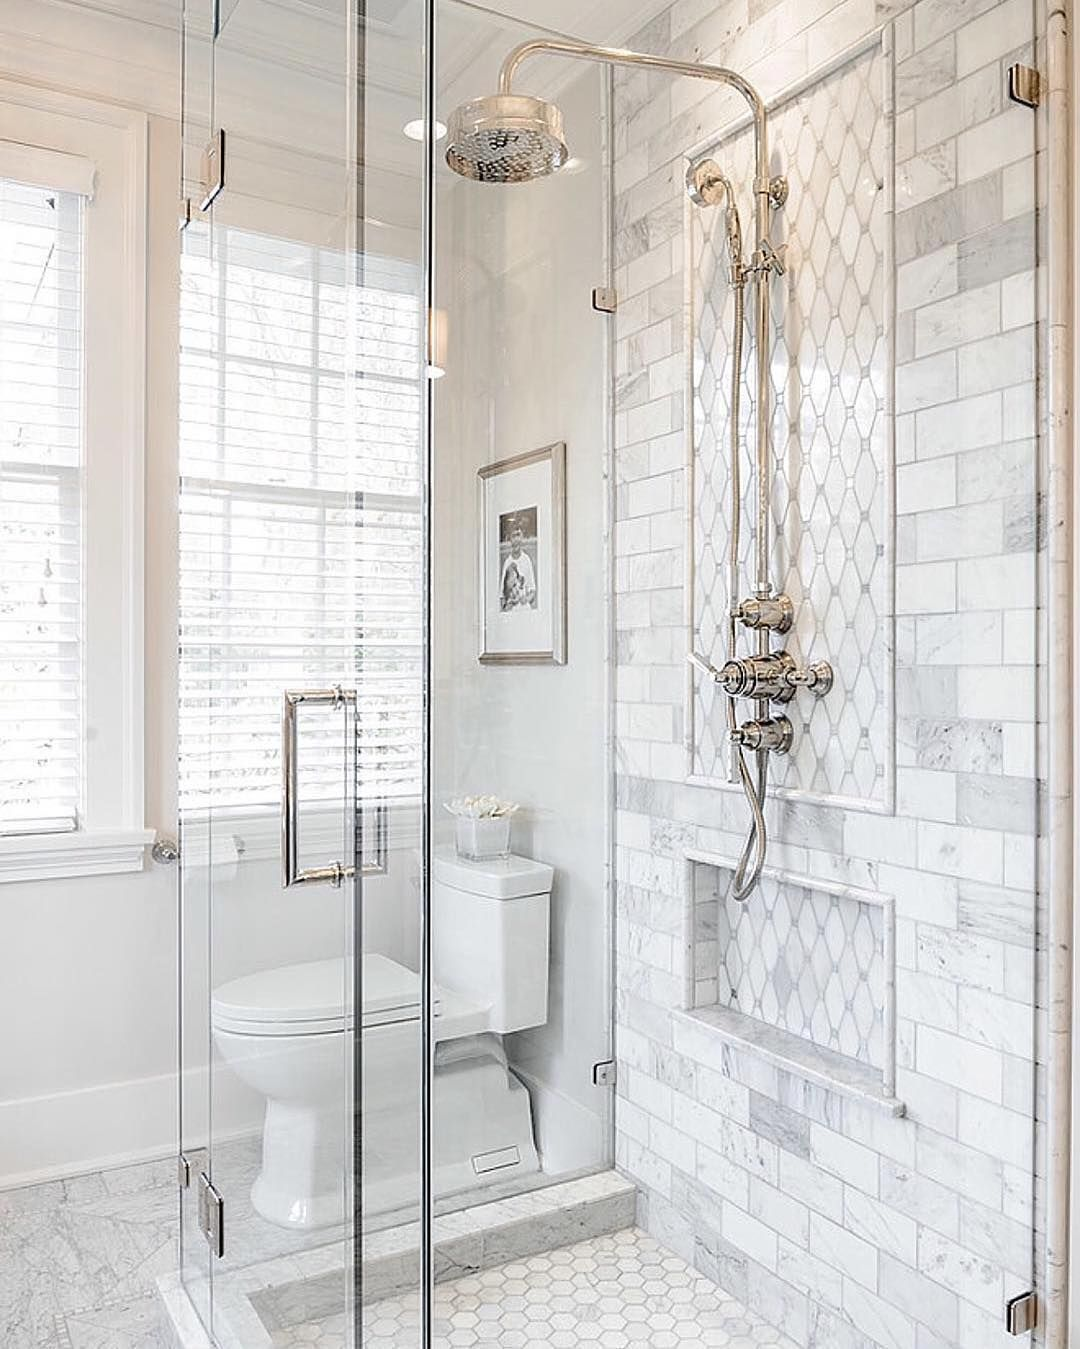 Start your day with something beautiful we 39 re feeling inspired by this beautiful bathroom from Bathroom tile stores